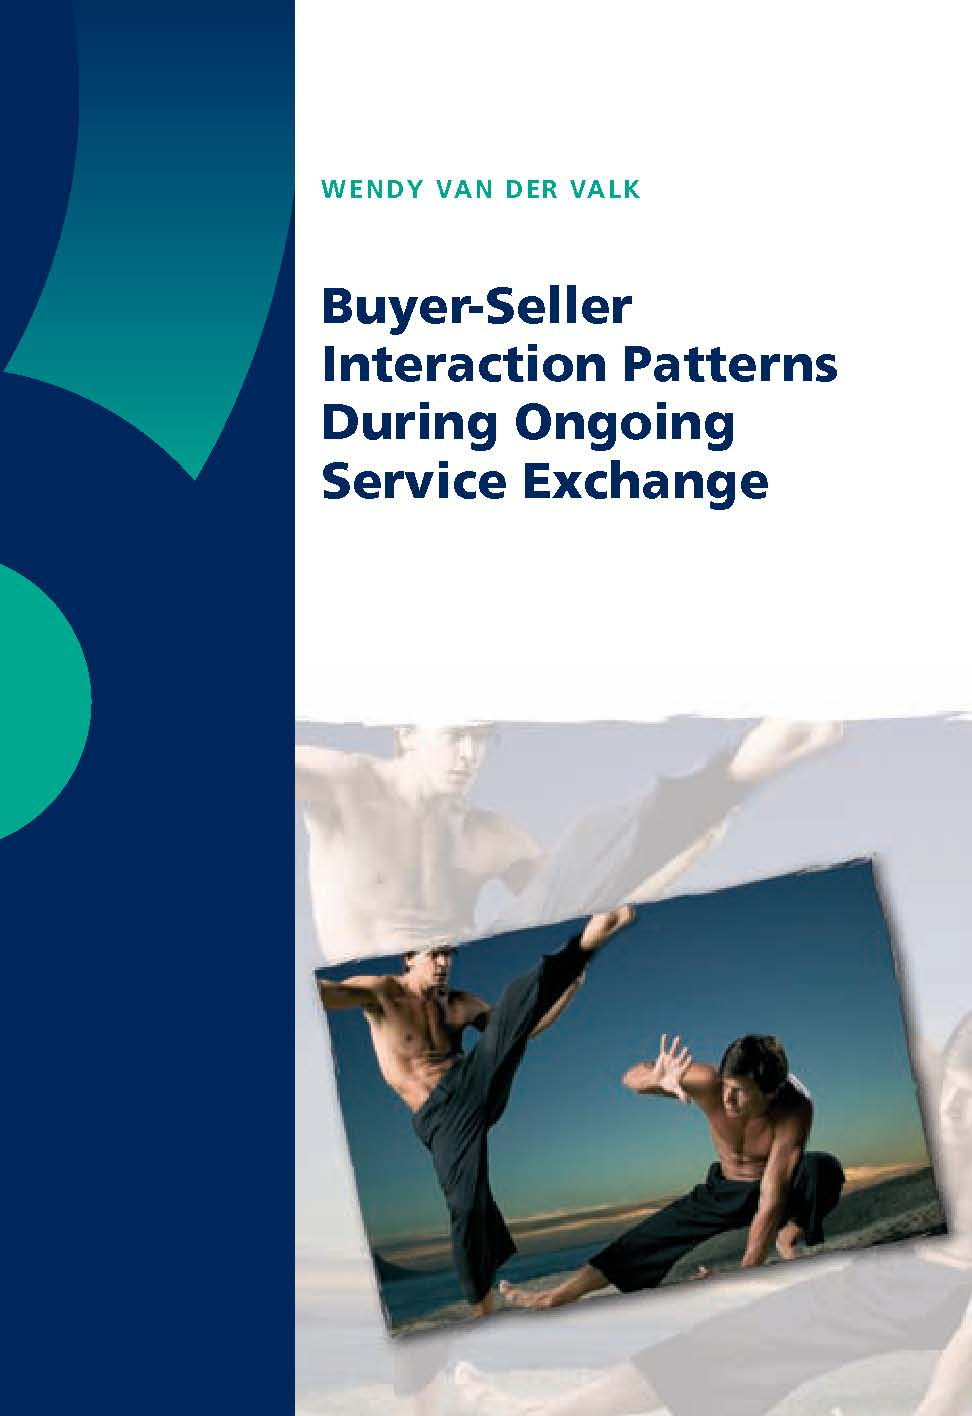 Buyer-Seller Interaction Patterns During Ongoing Service Exchange